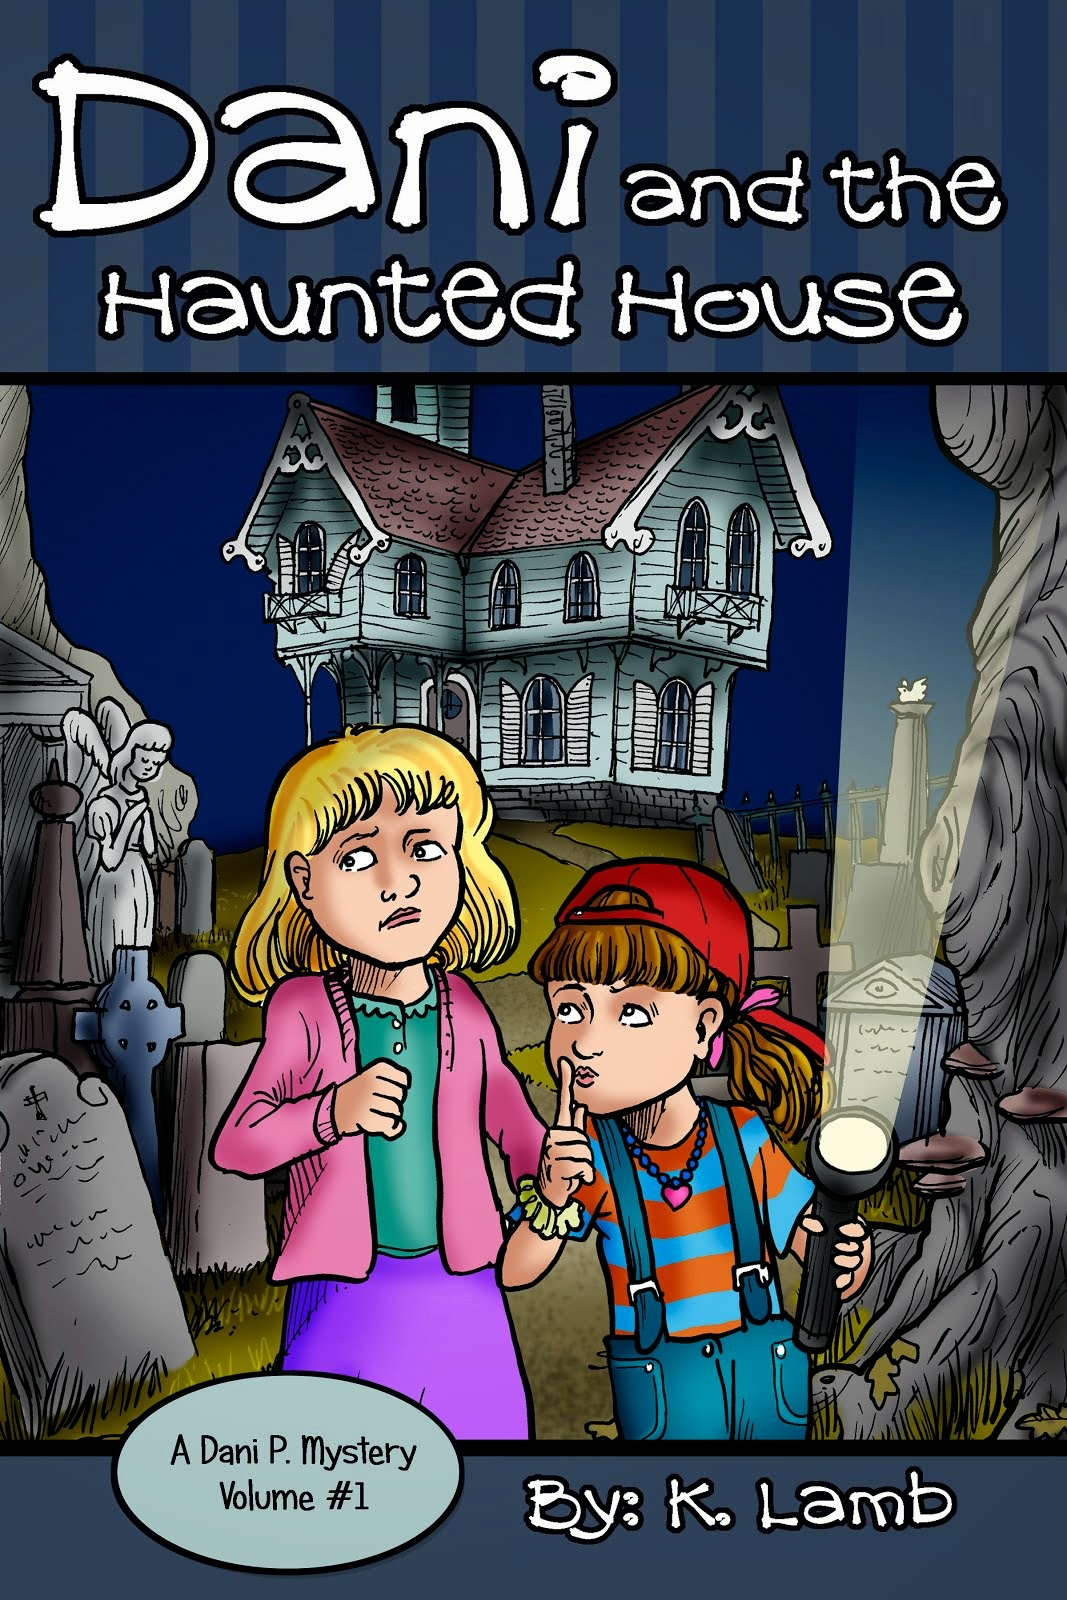 Dani and the Haunted House on Amazon